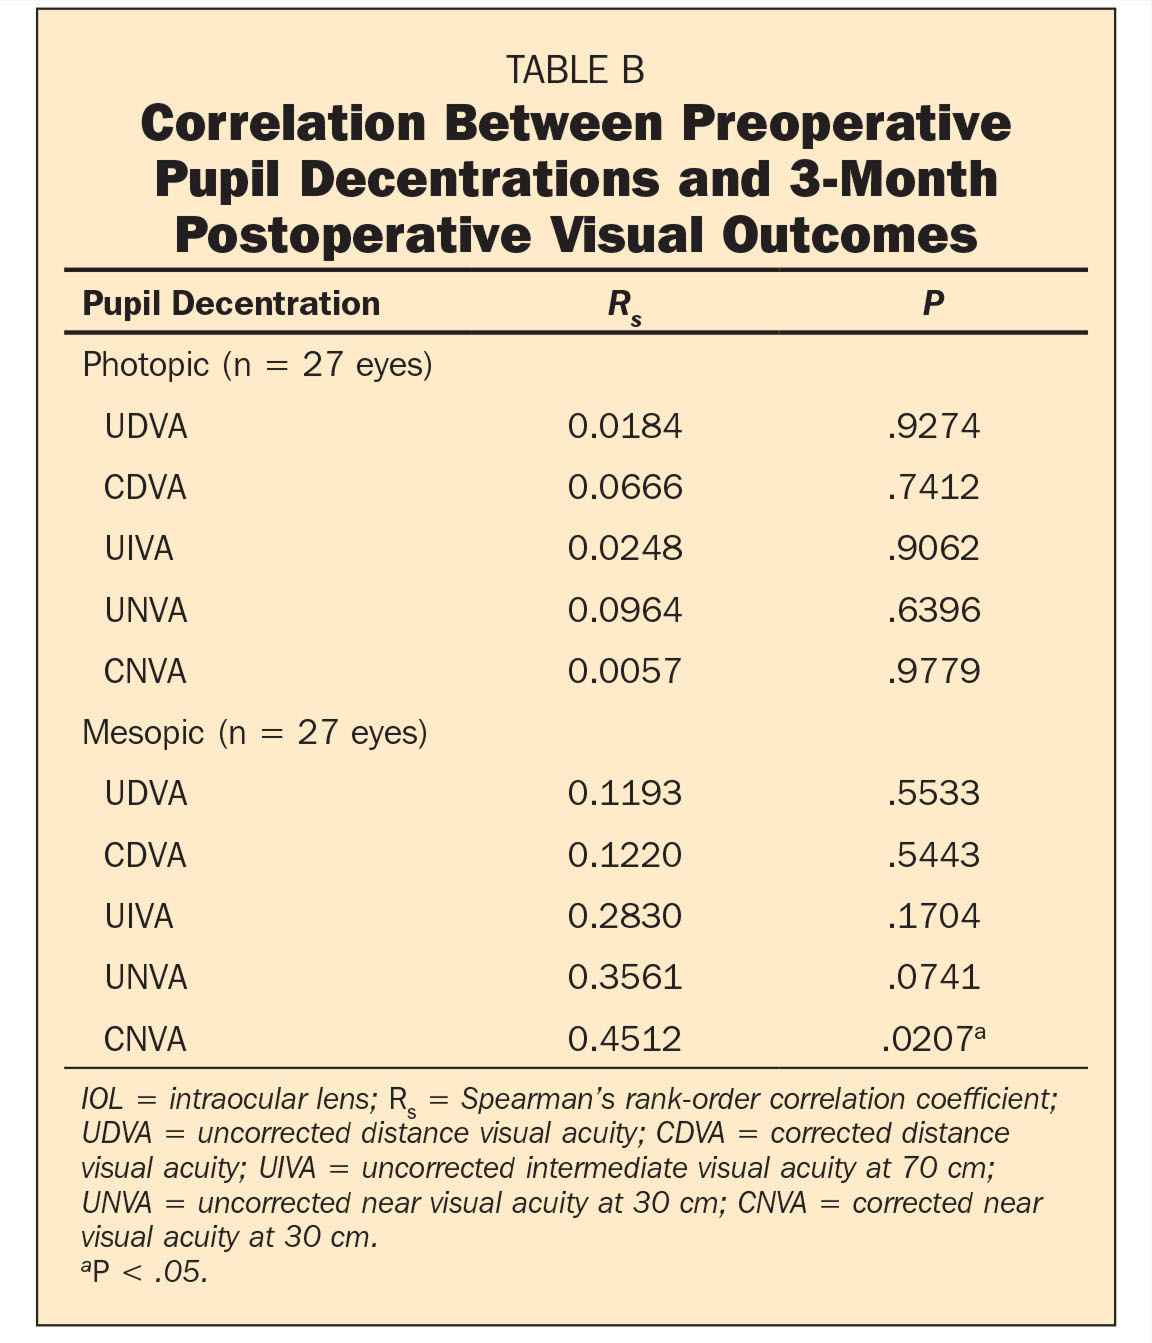 Correlation Between Preoperative Pupil Decentrations and 3-Month Postoperative Visual Outcomes